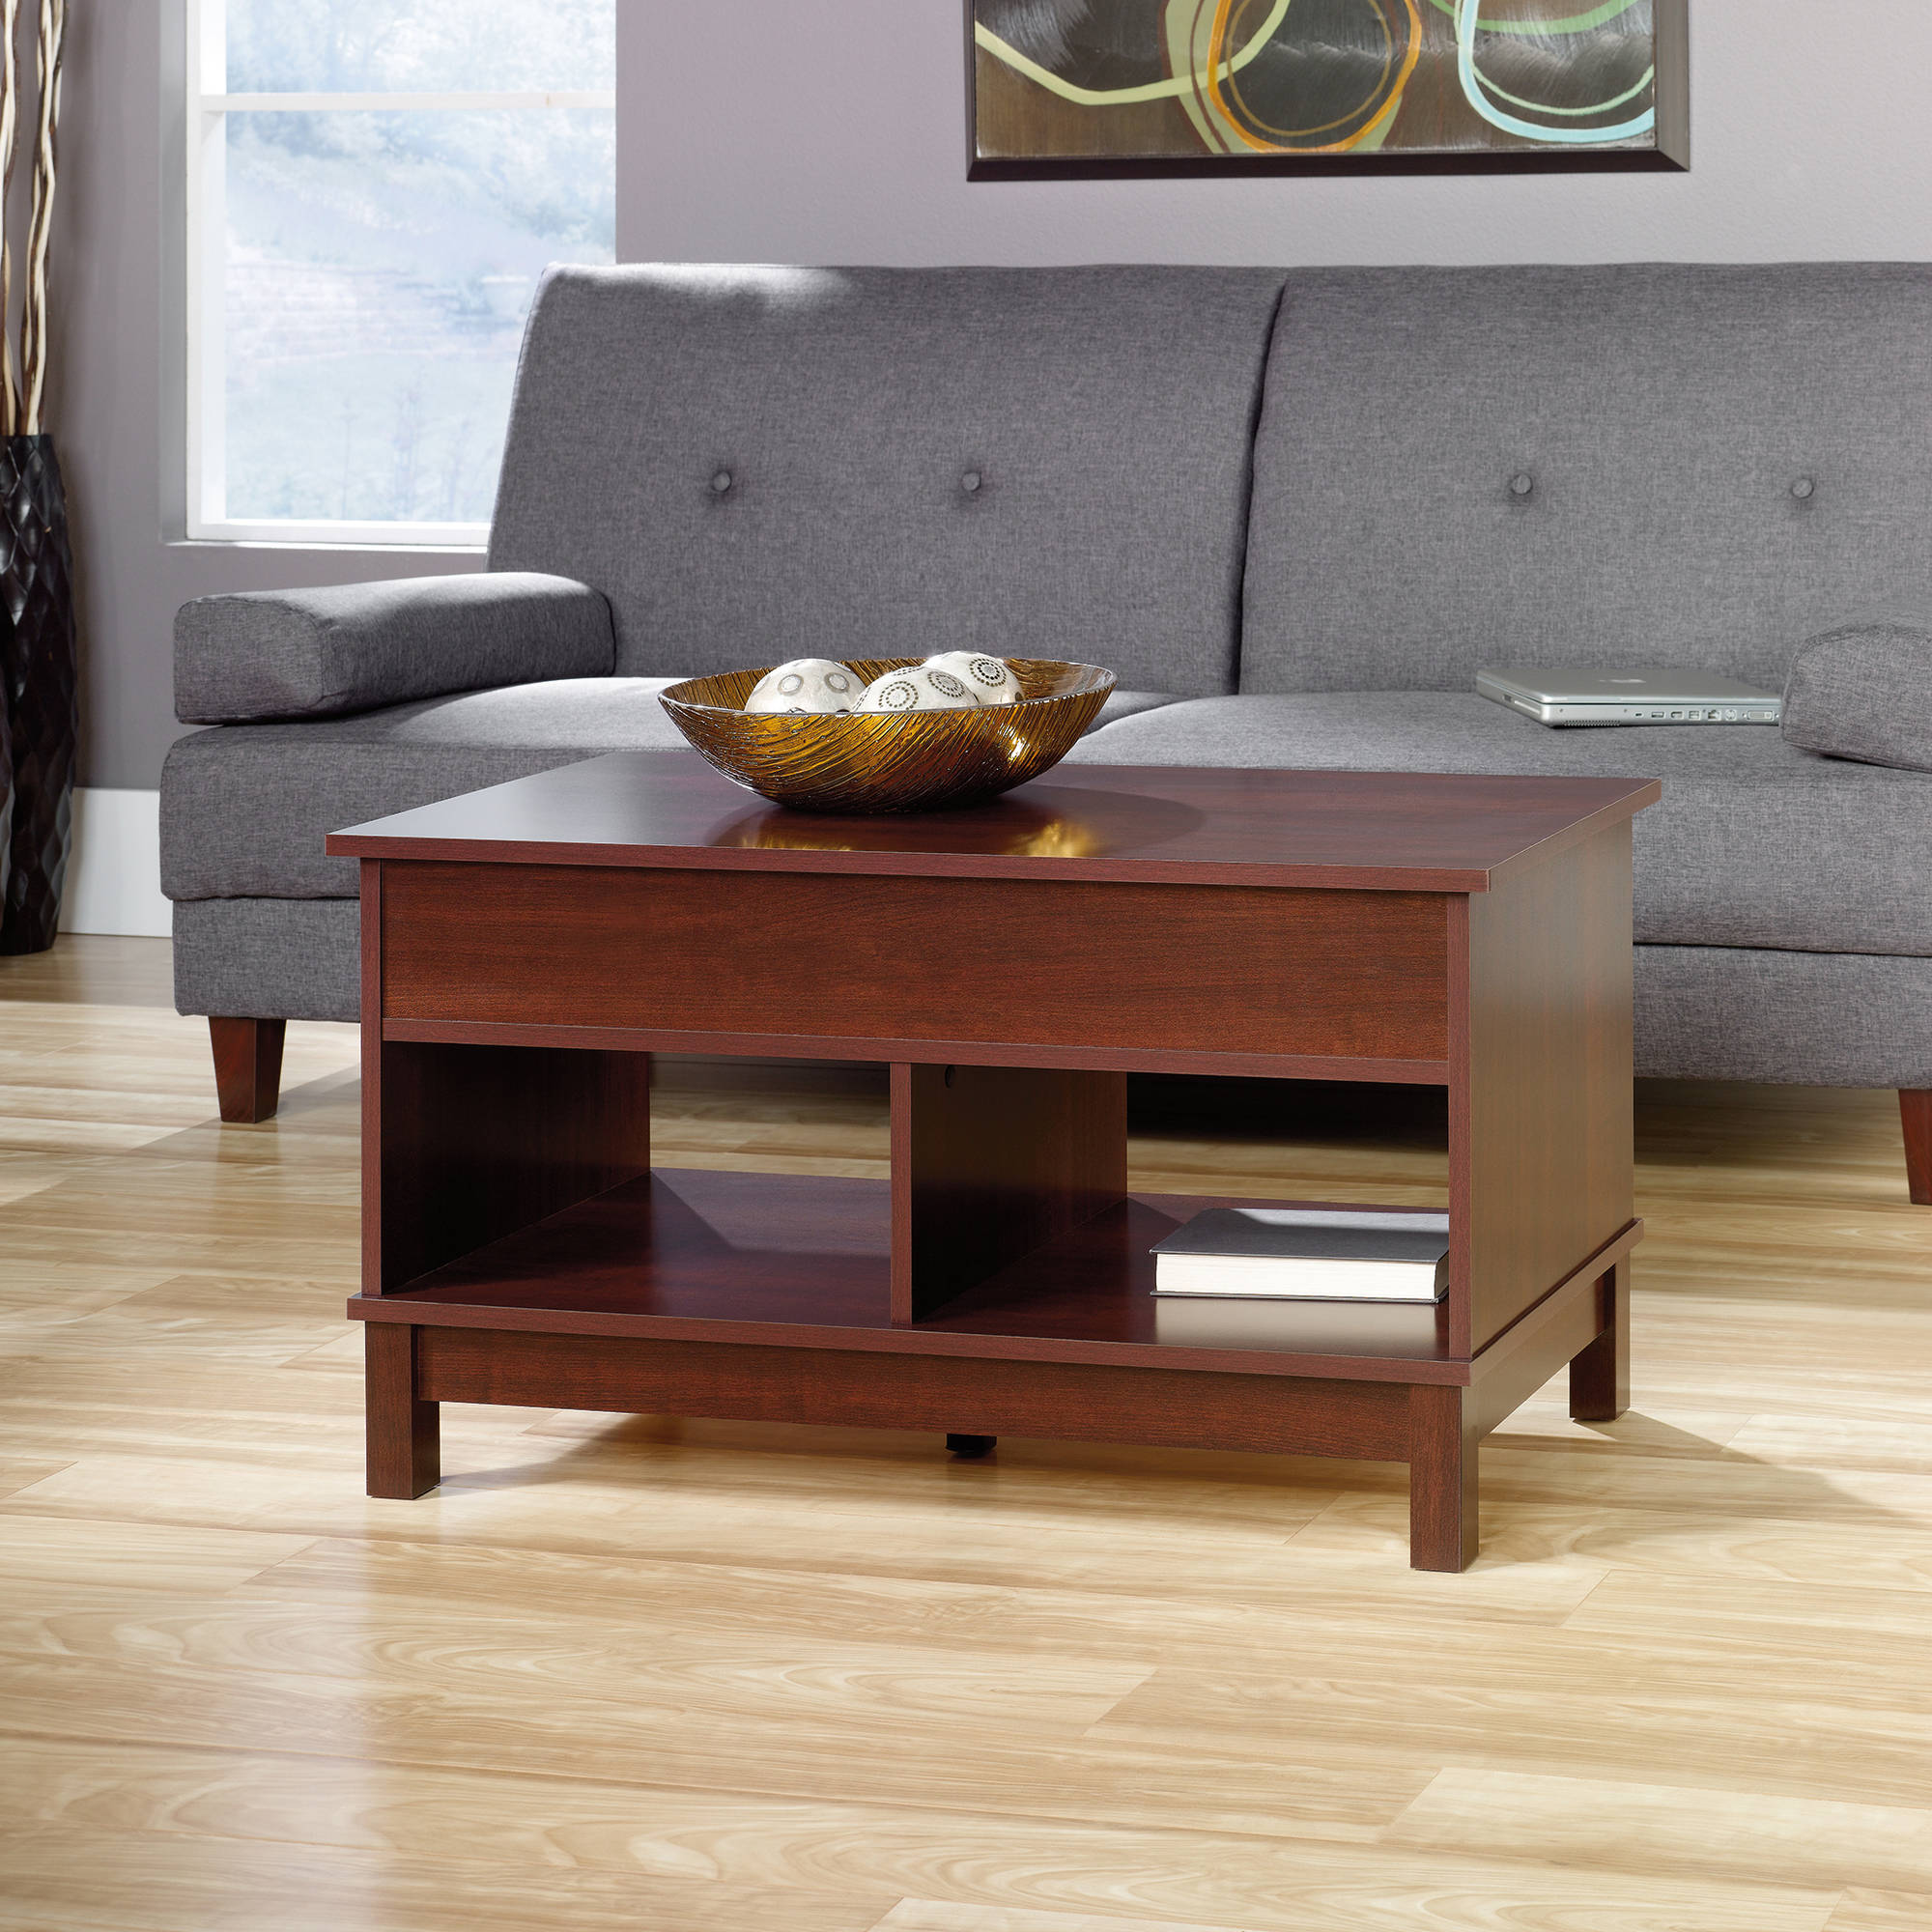 sauder kendall square lift top coffee table cherry walmart com